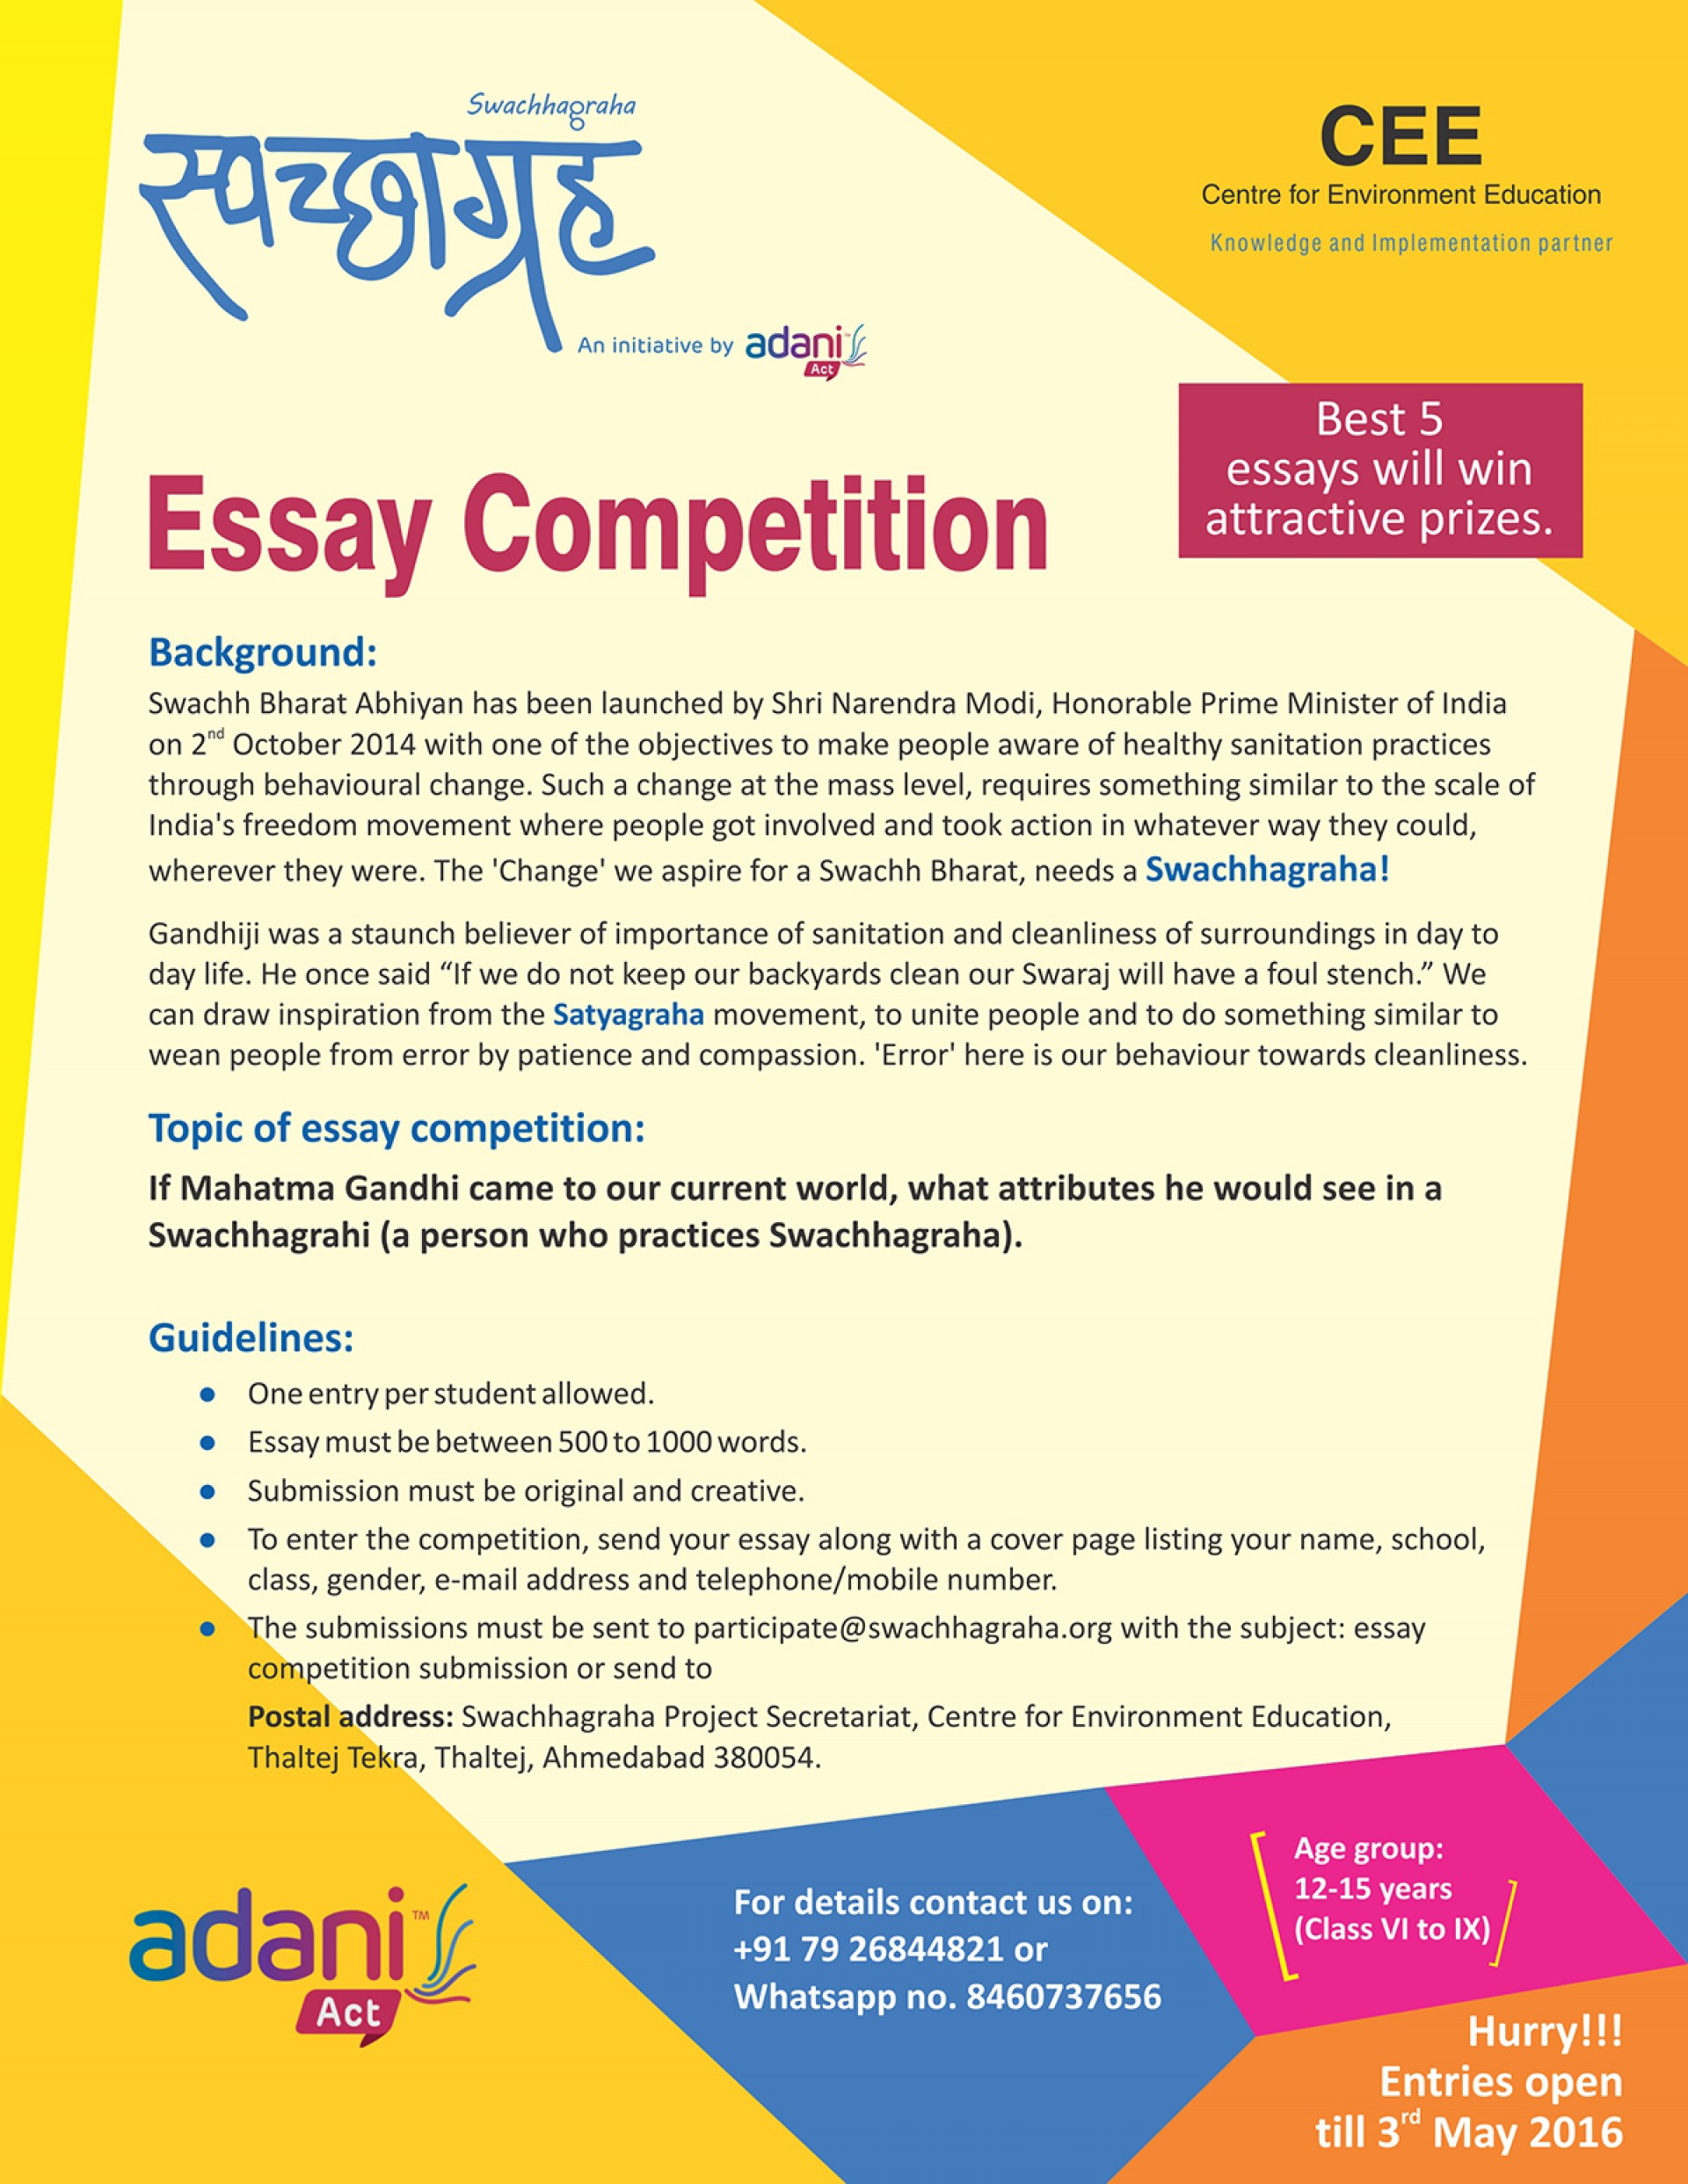 011 20180129171946essay20competition Essay About Cleanliness In School Phenomenal On Toilet And Its Surrounding 1920